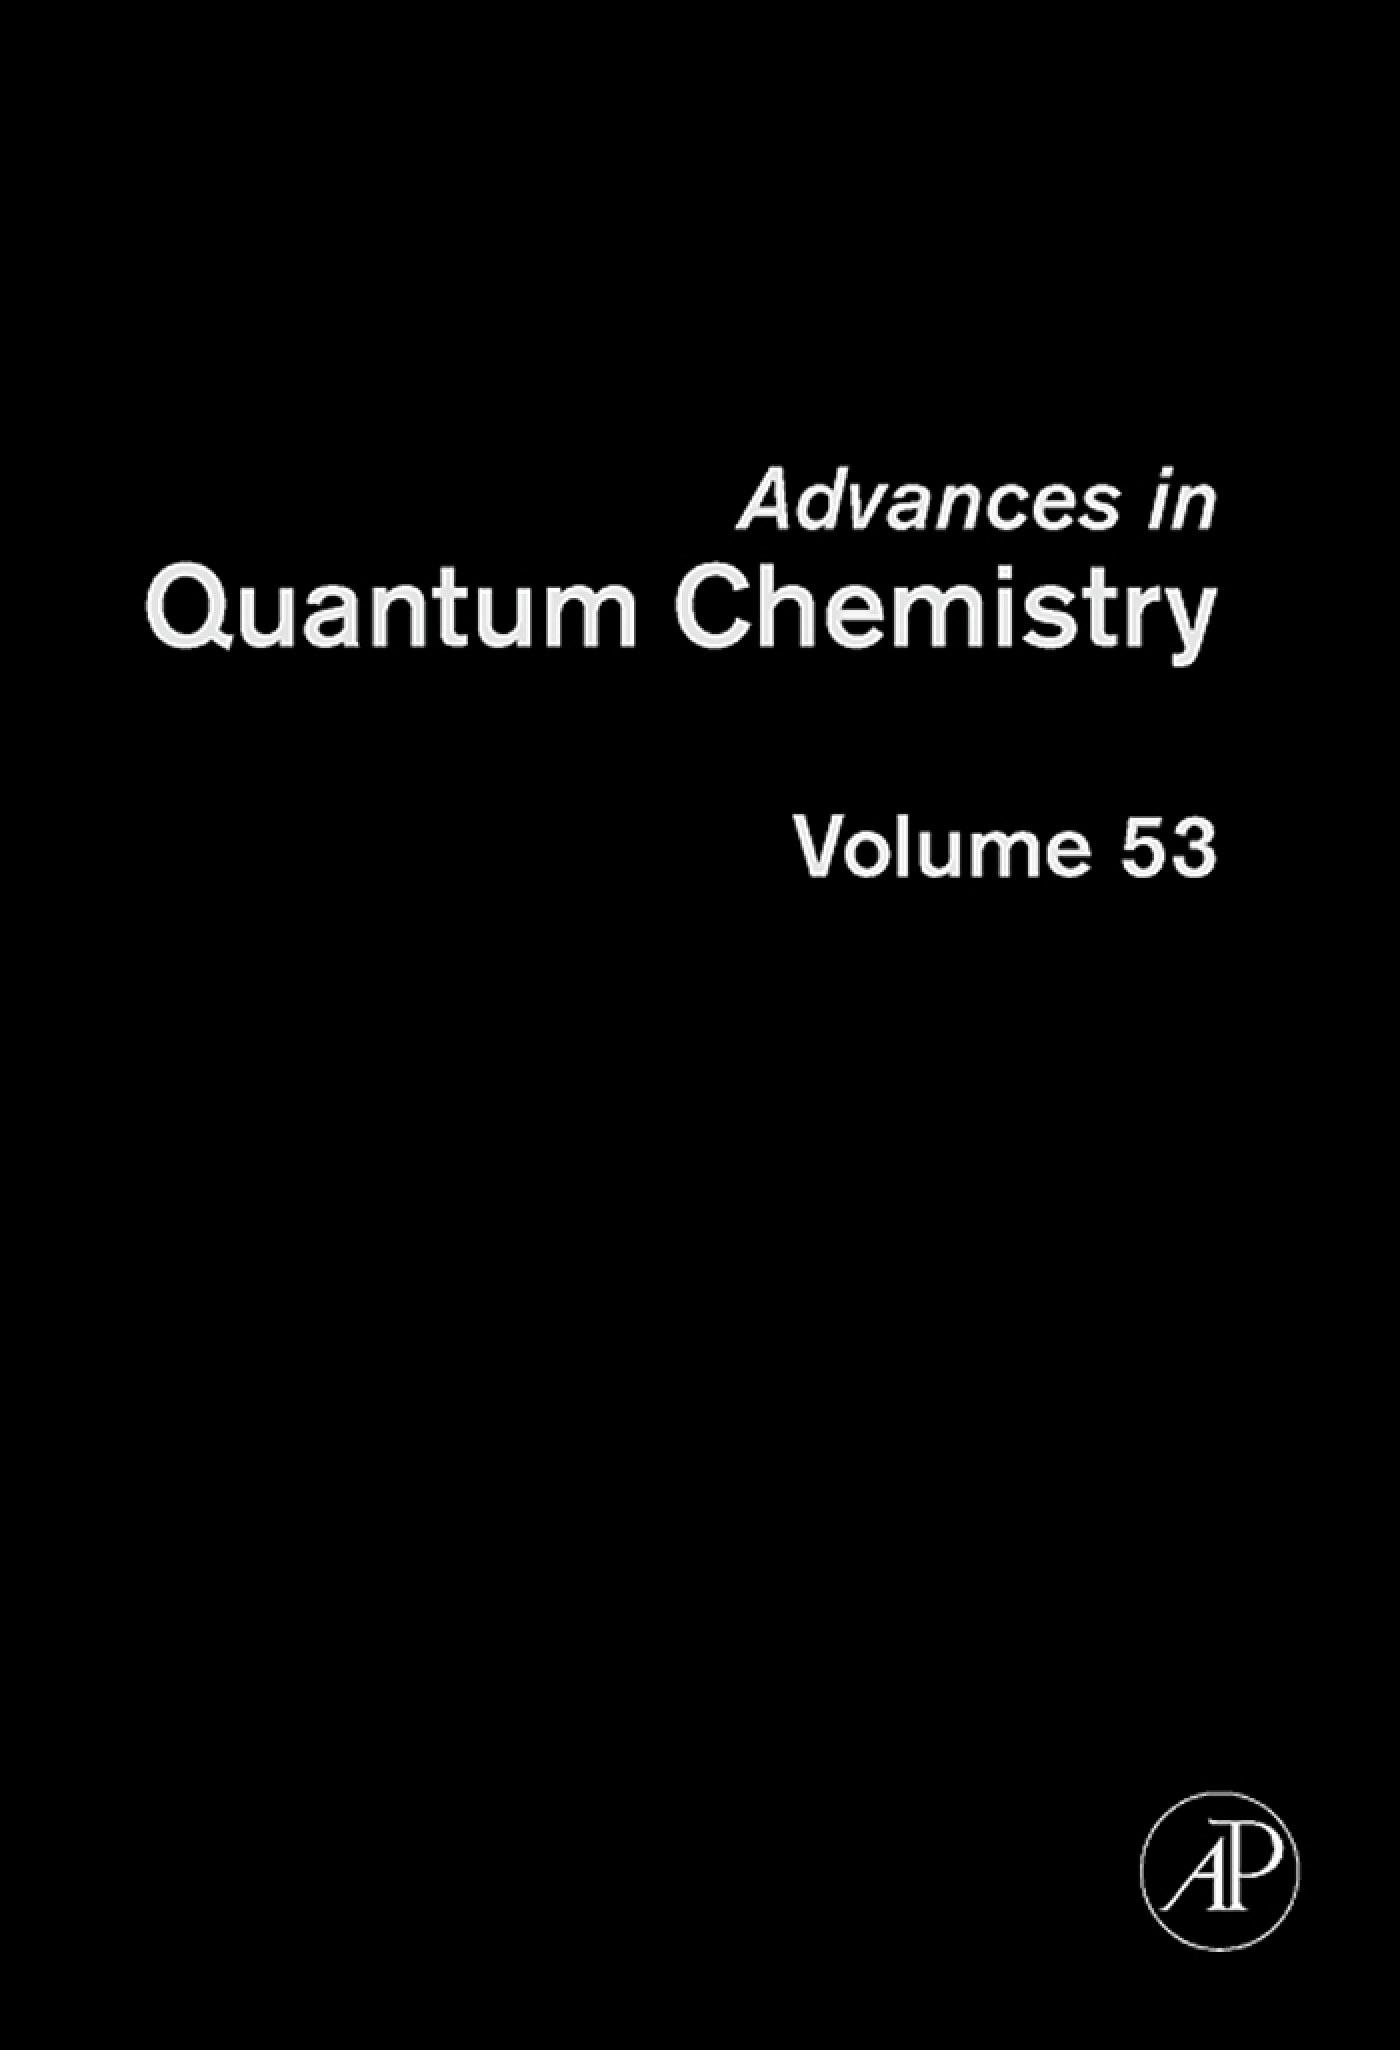 Advances in Quantum Chemistry: Current Trends in Atomic Physics By: Sabin, John R.